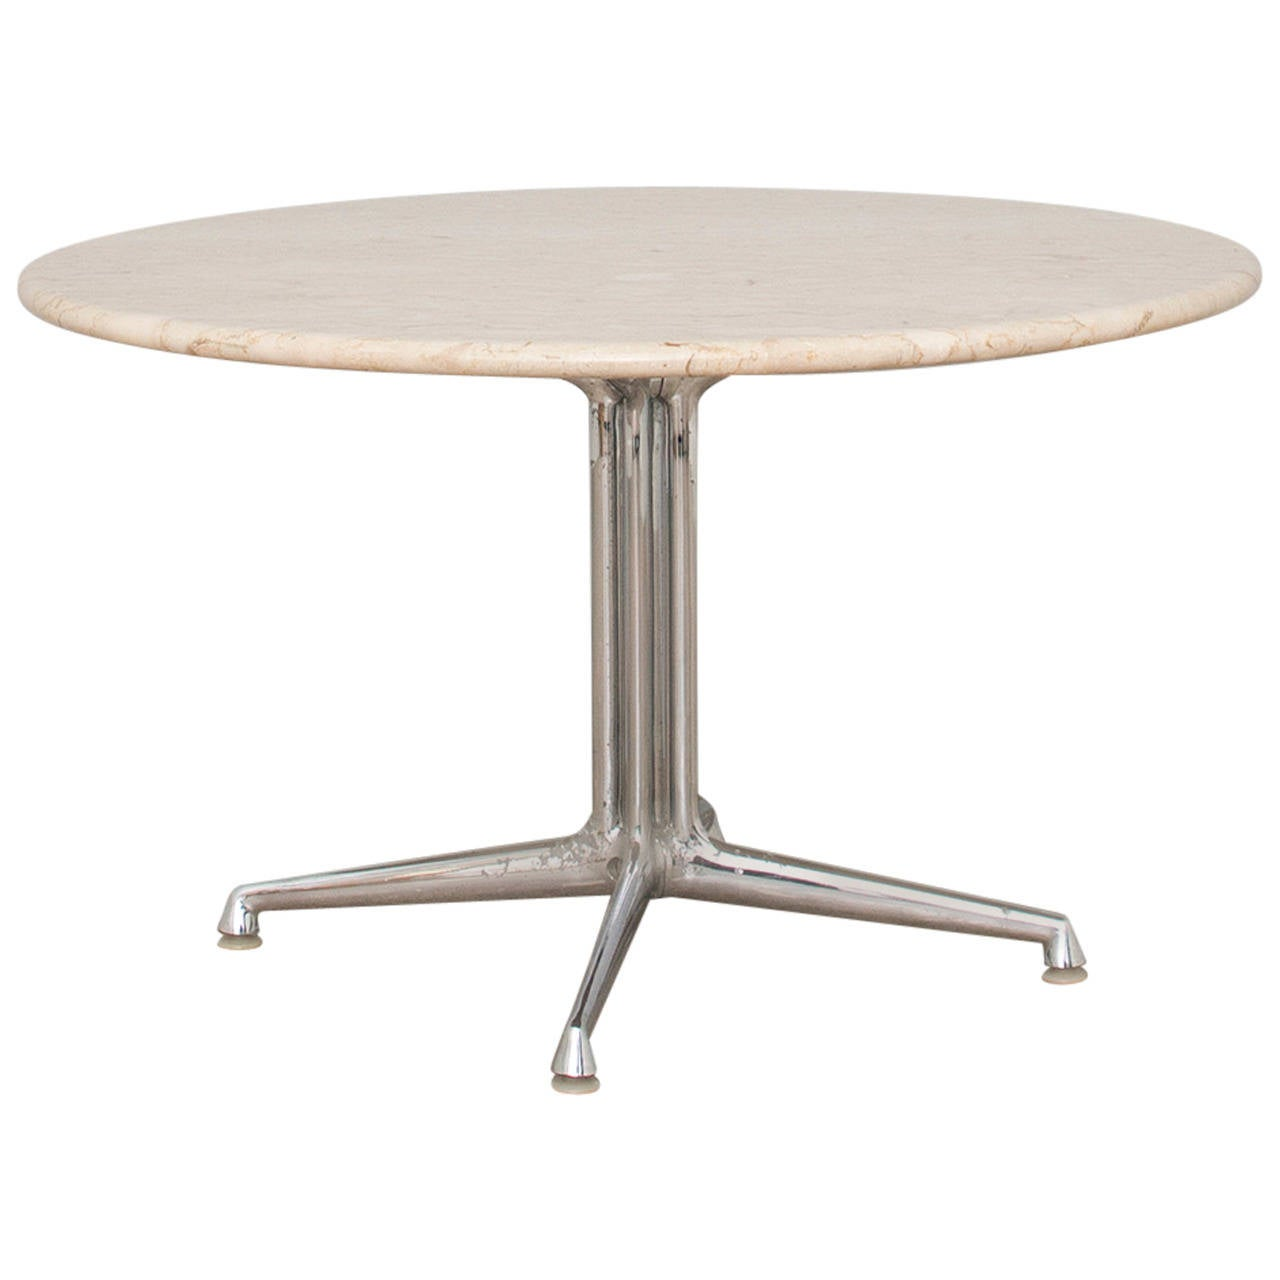 Marble Coffee Table Houston: La Fonda By Herman Miller Marble Side Table For Sale At